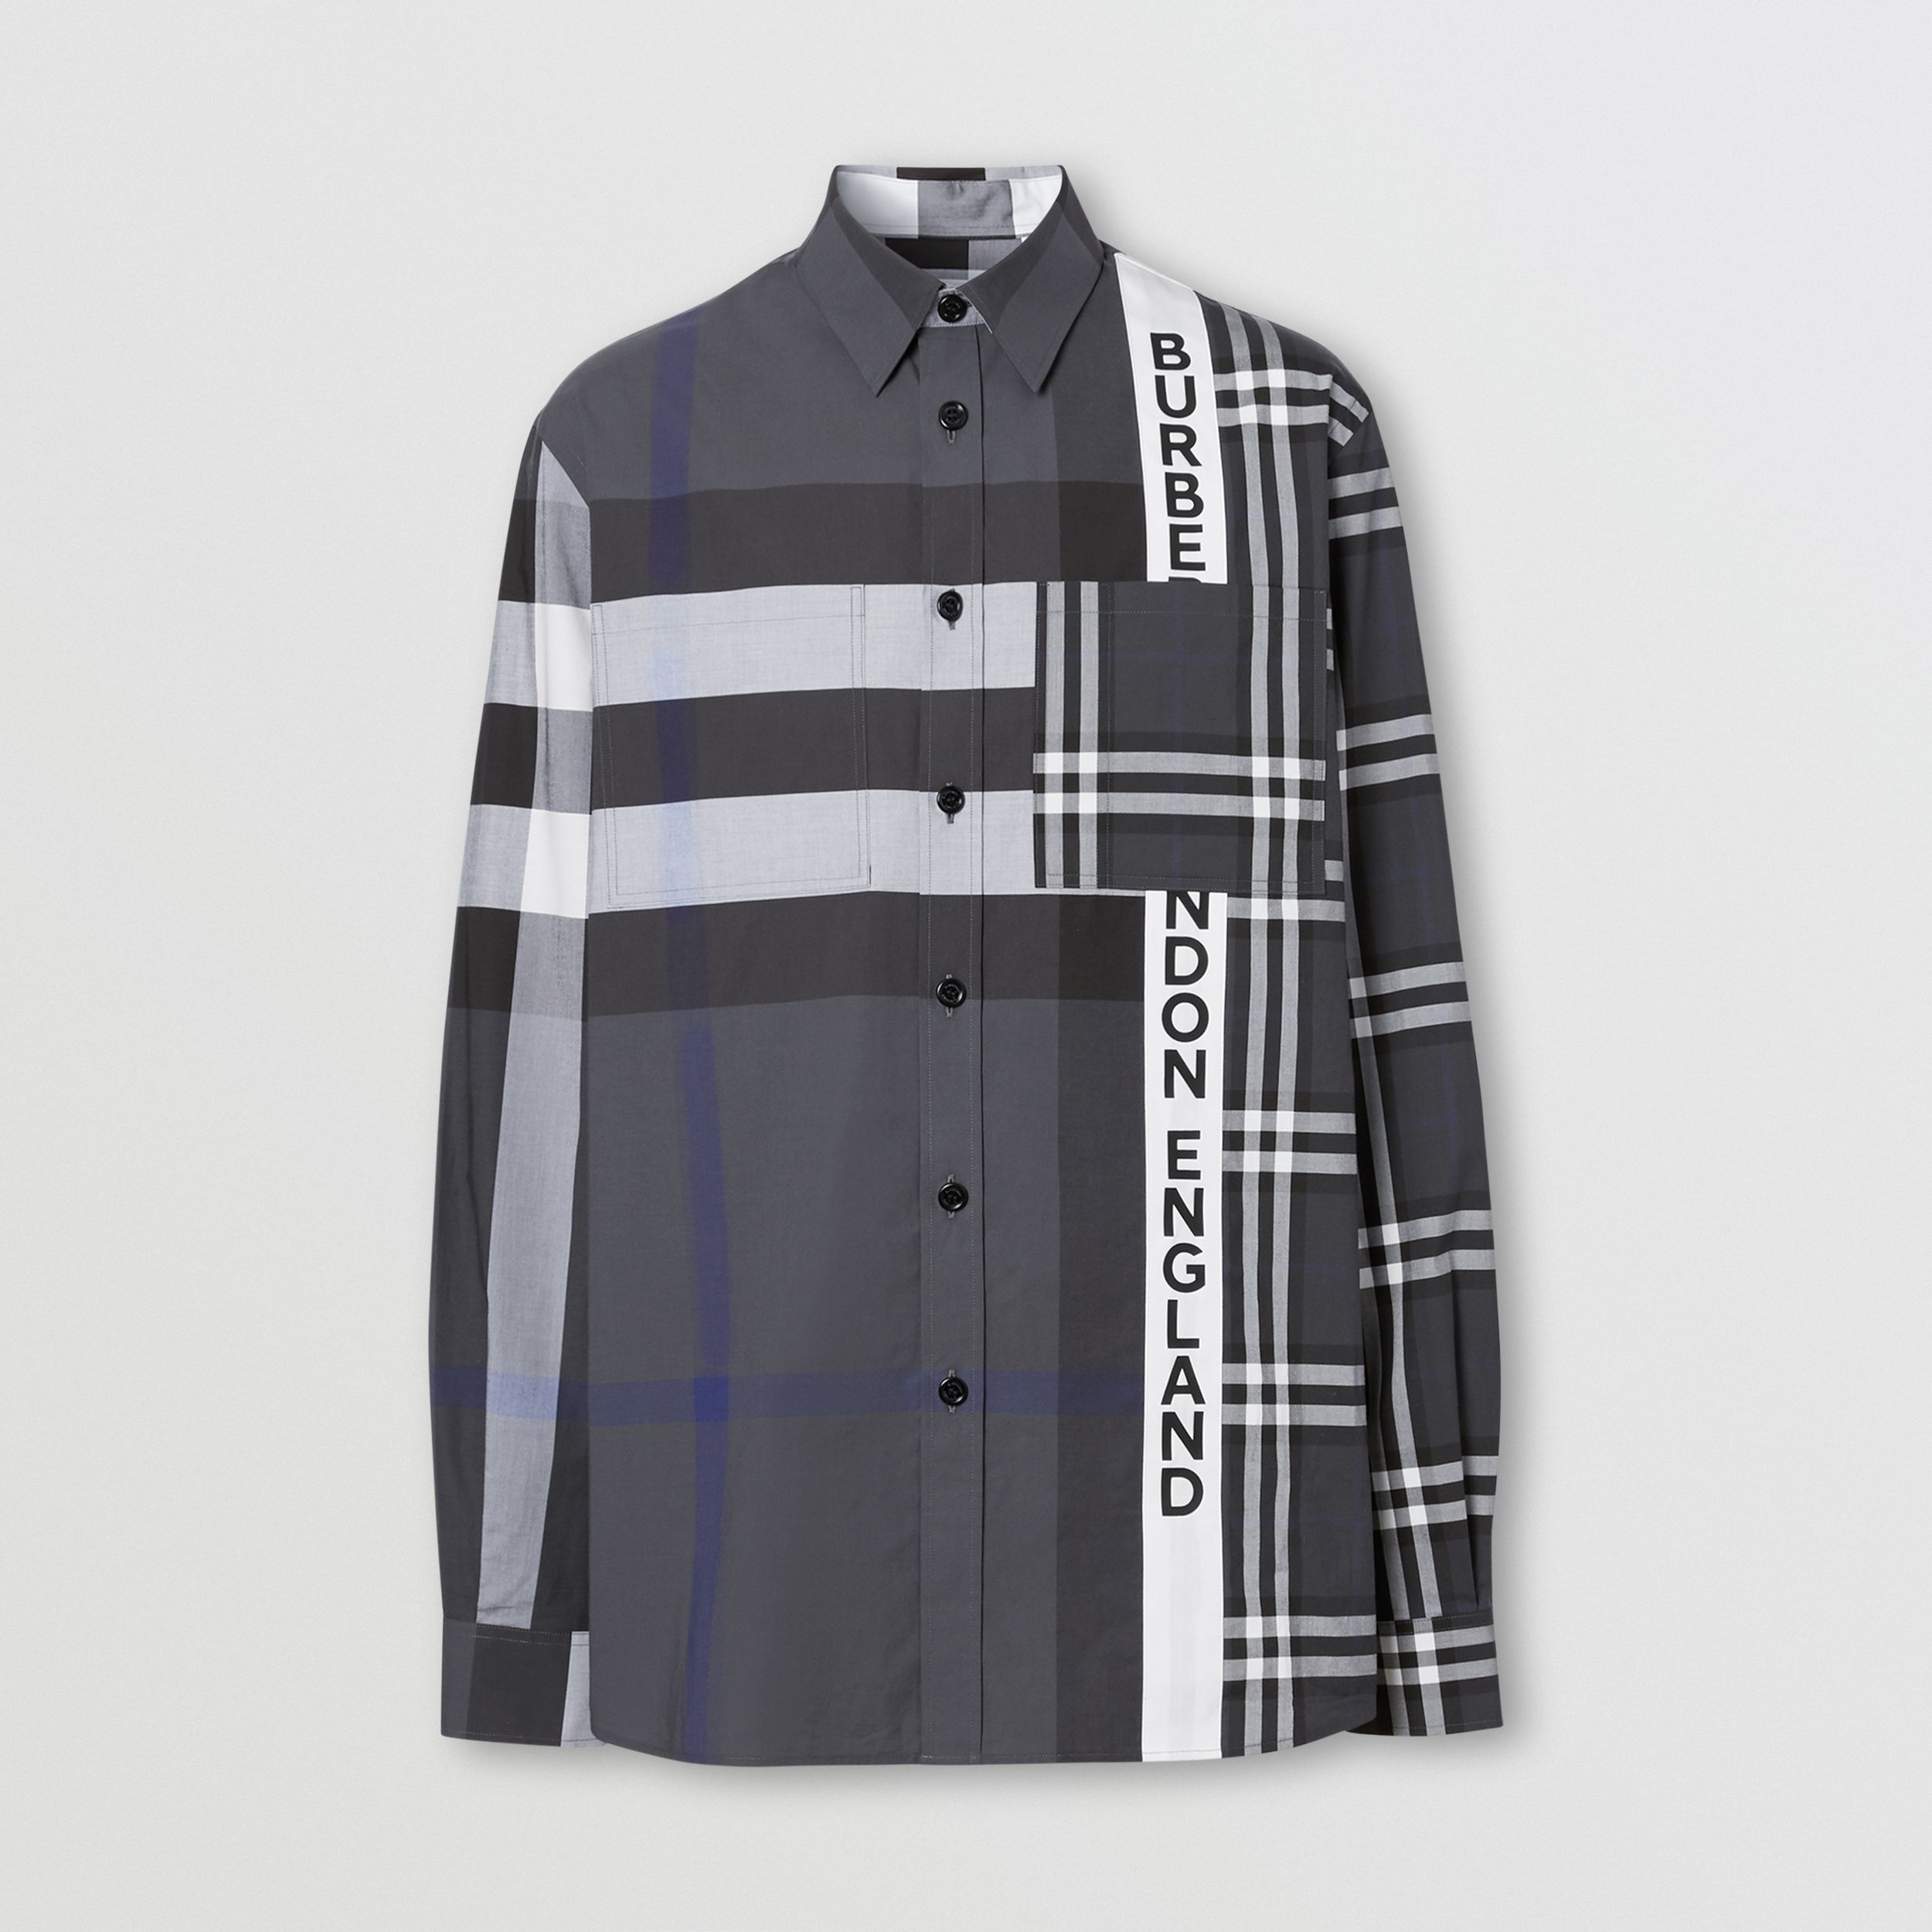 Logo Print Patchwork Check Cotton Oversized Shirt in Dark Pewter - Men | Burberry - 4